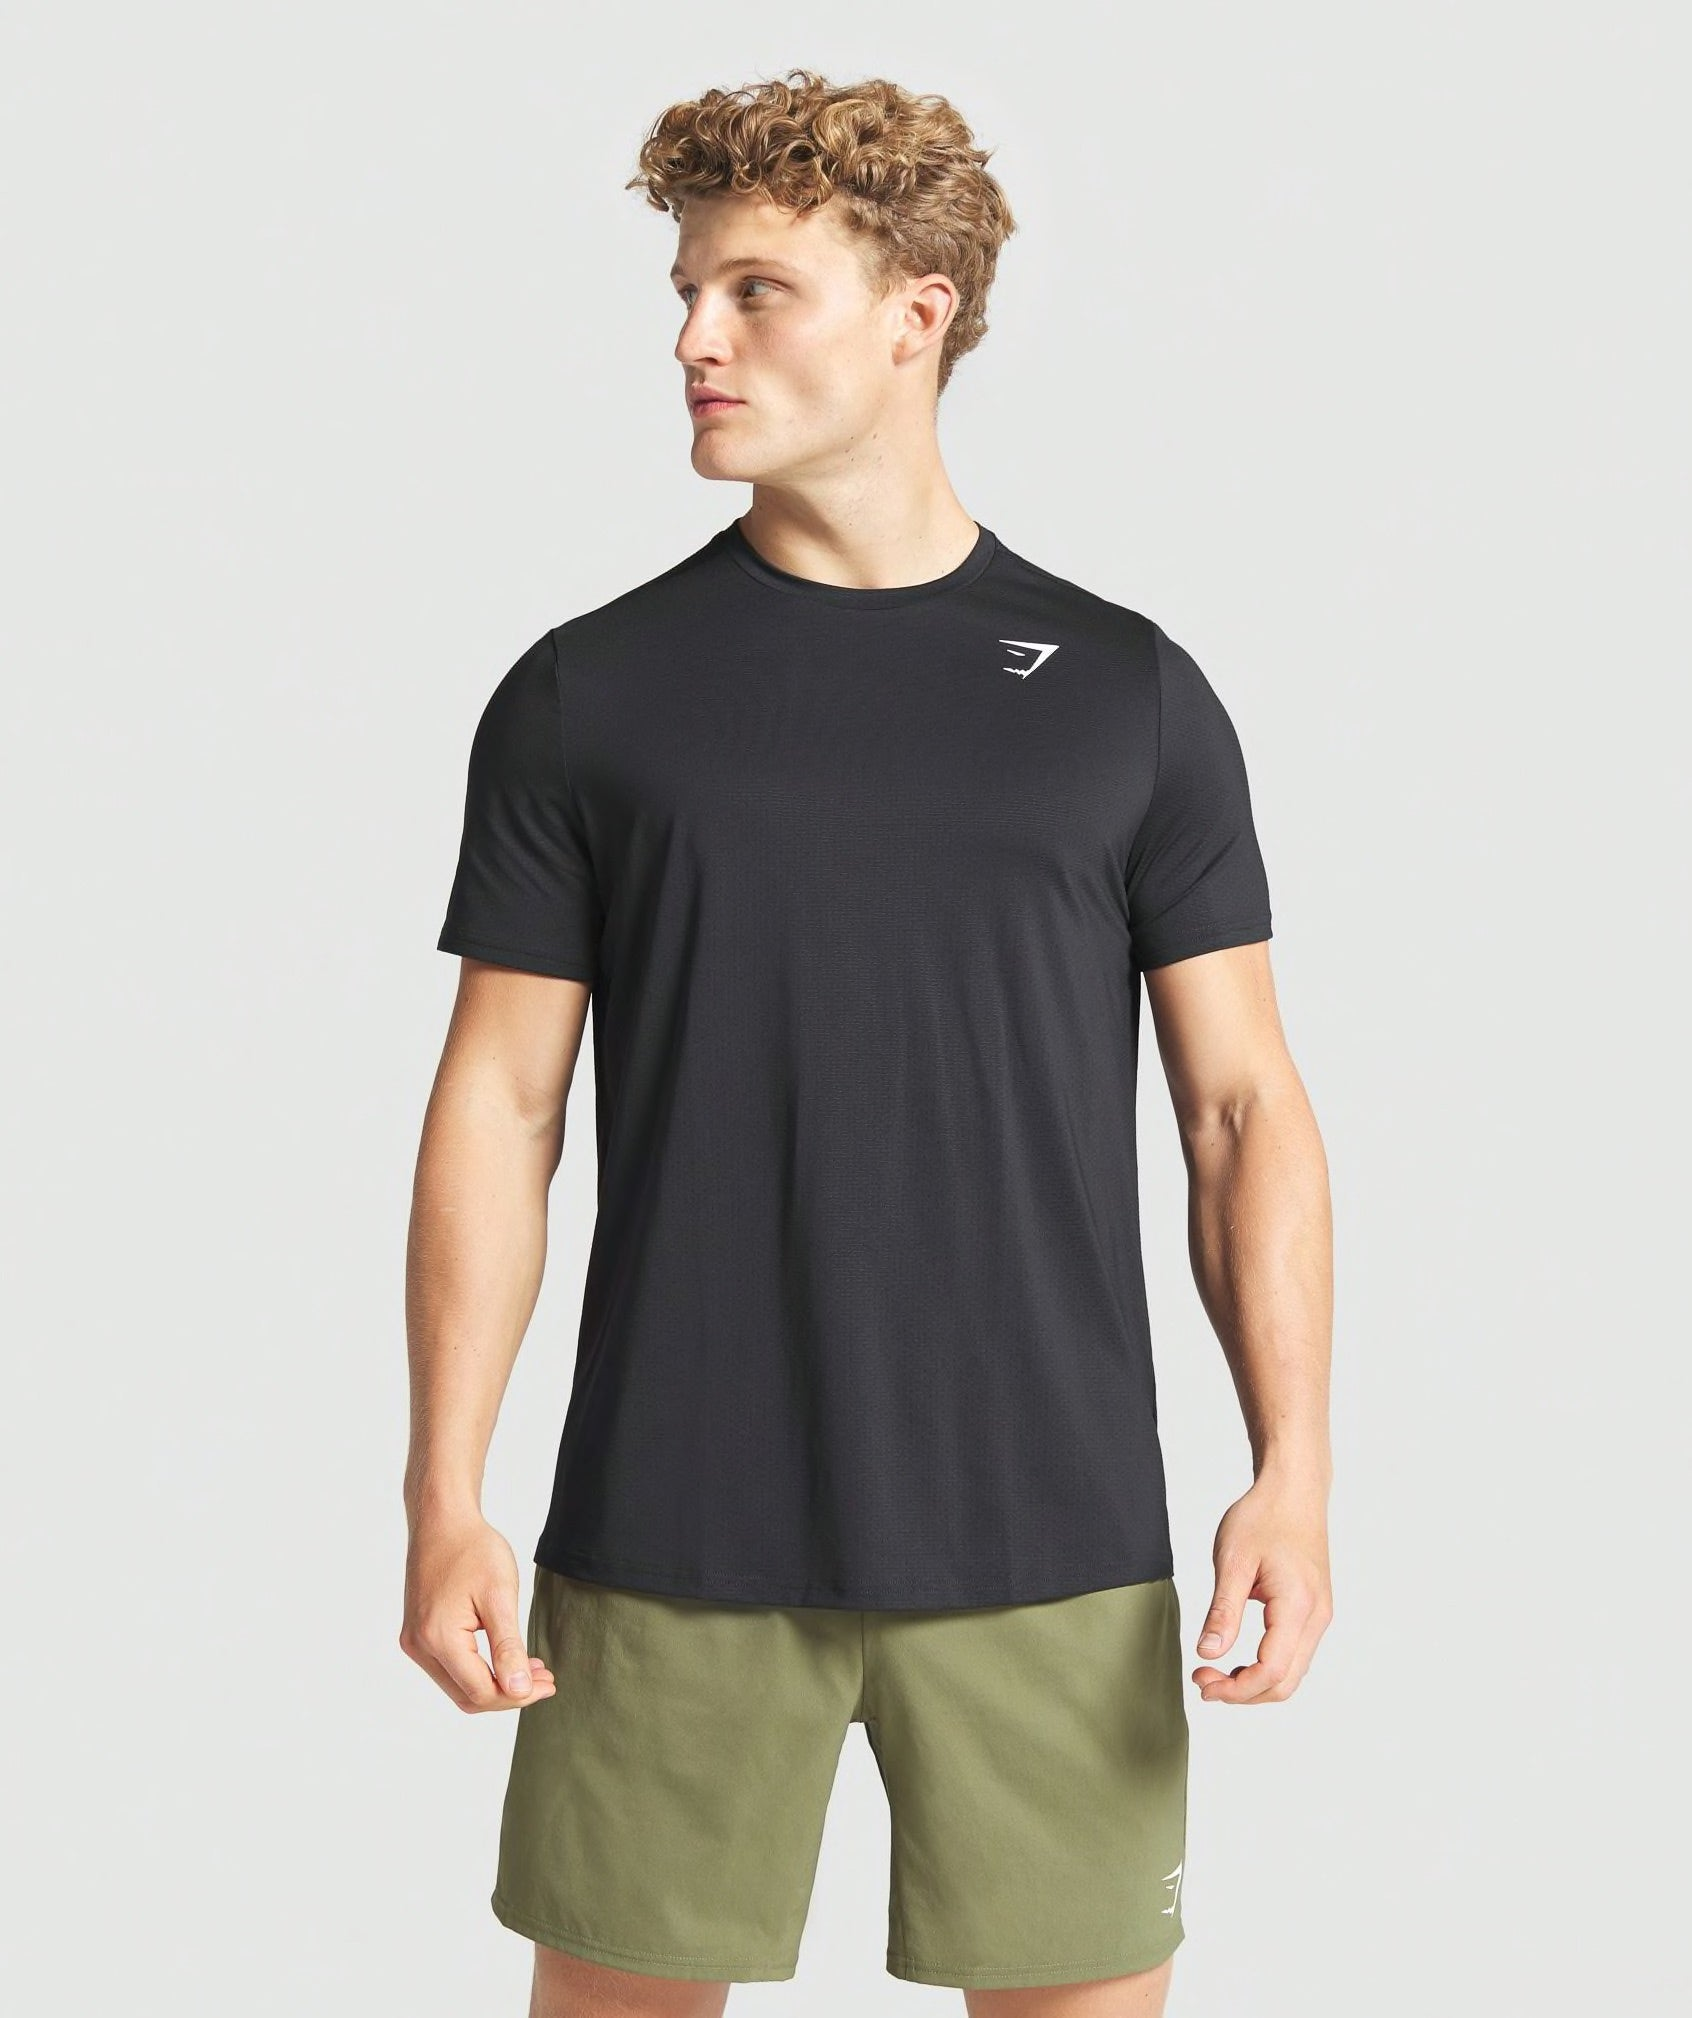 Arrival Regular Fit T-Shirt